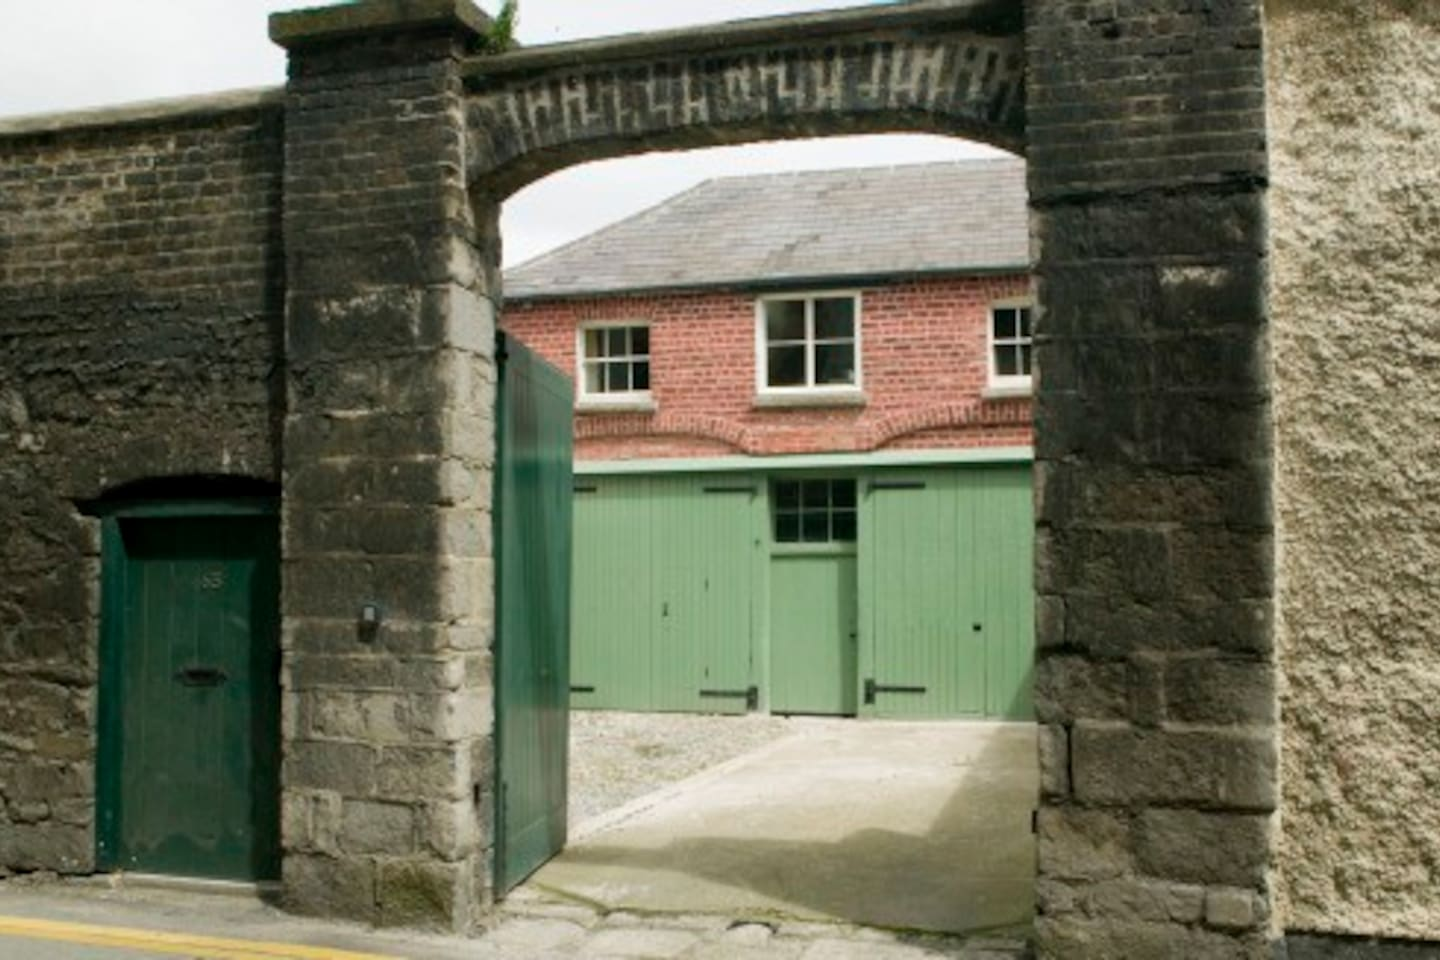 The Merrion Mews